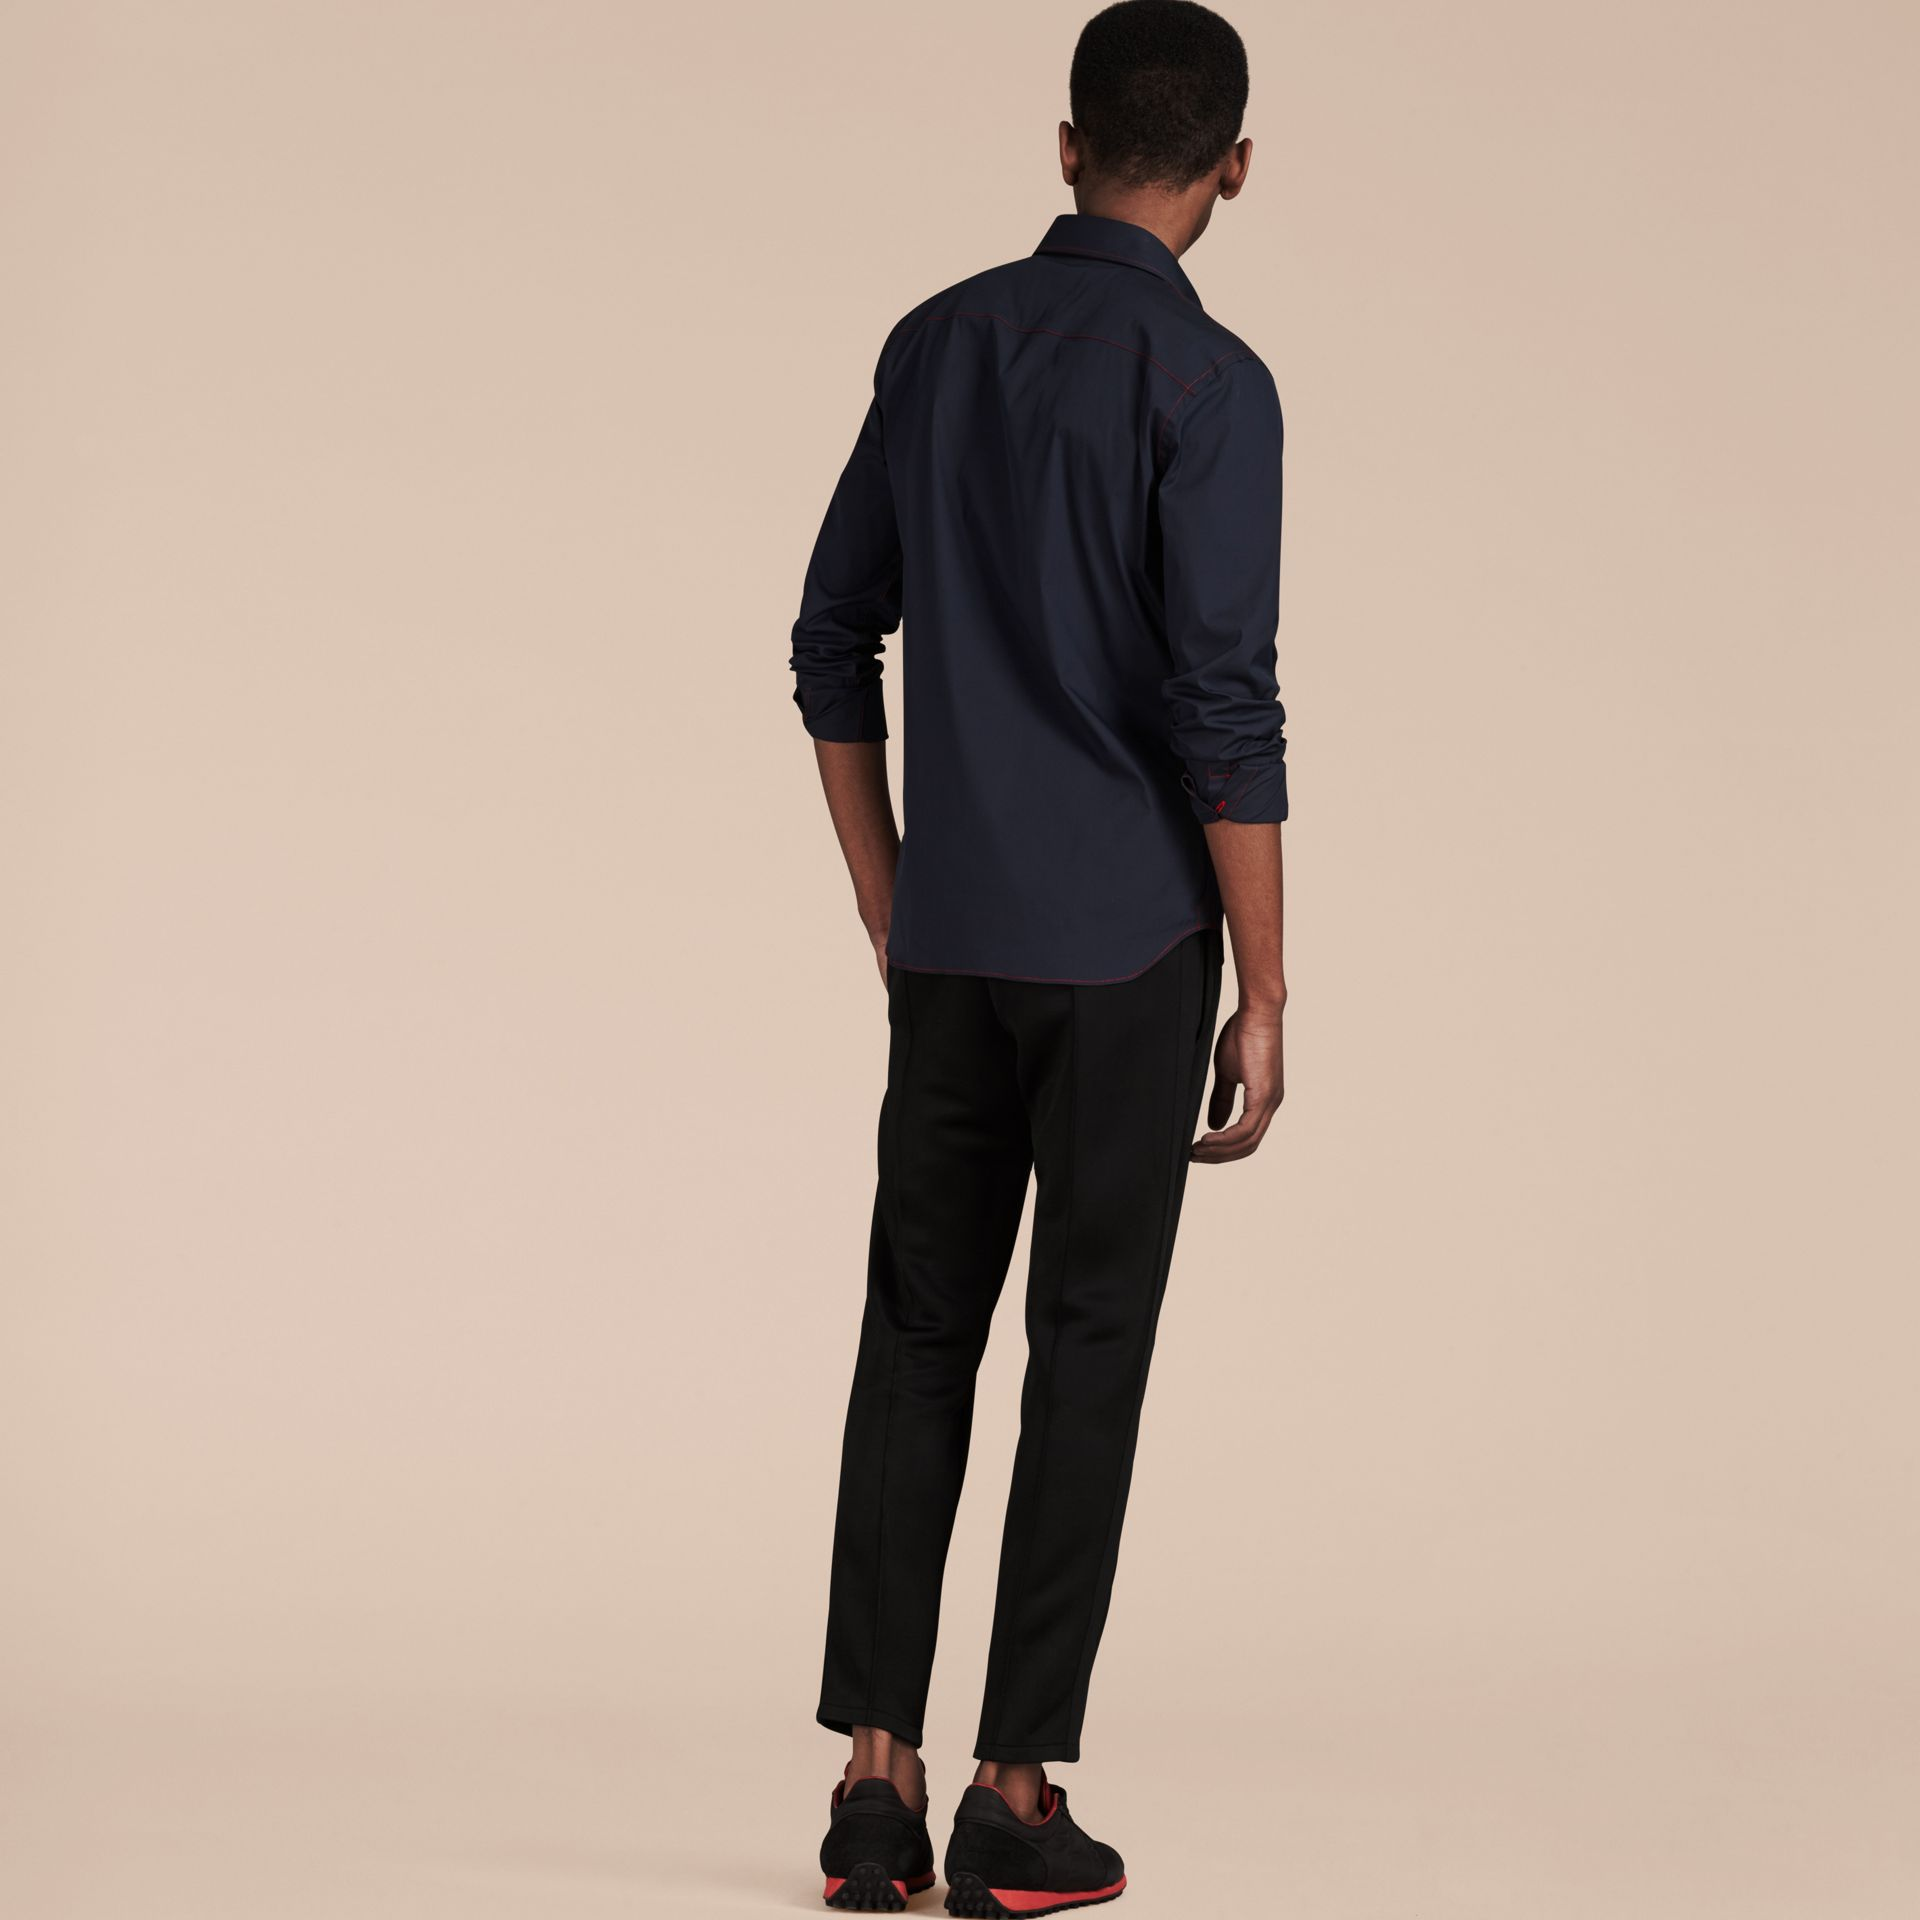 Navy Contrast Topstitch Stretch Cotton Shirt Navy - gallery image 3